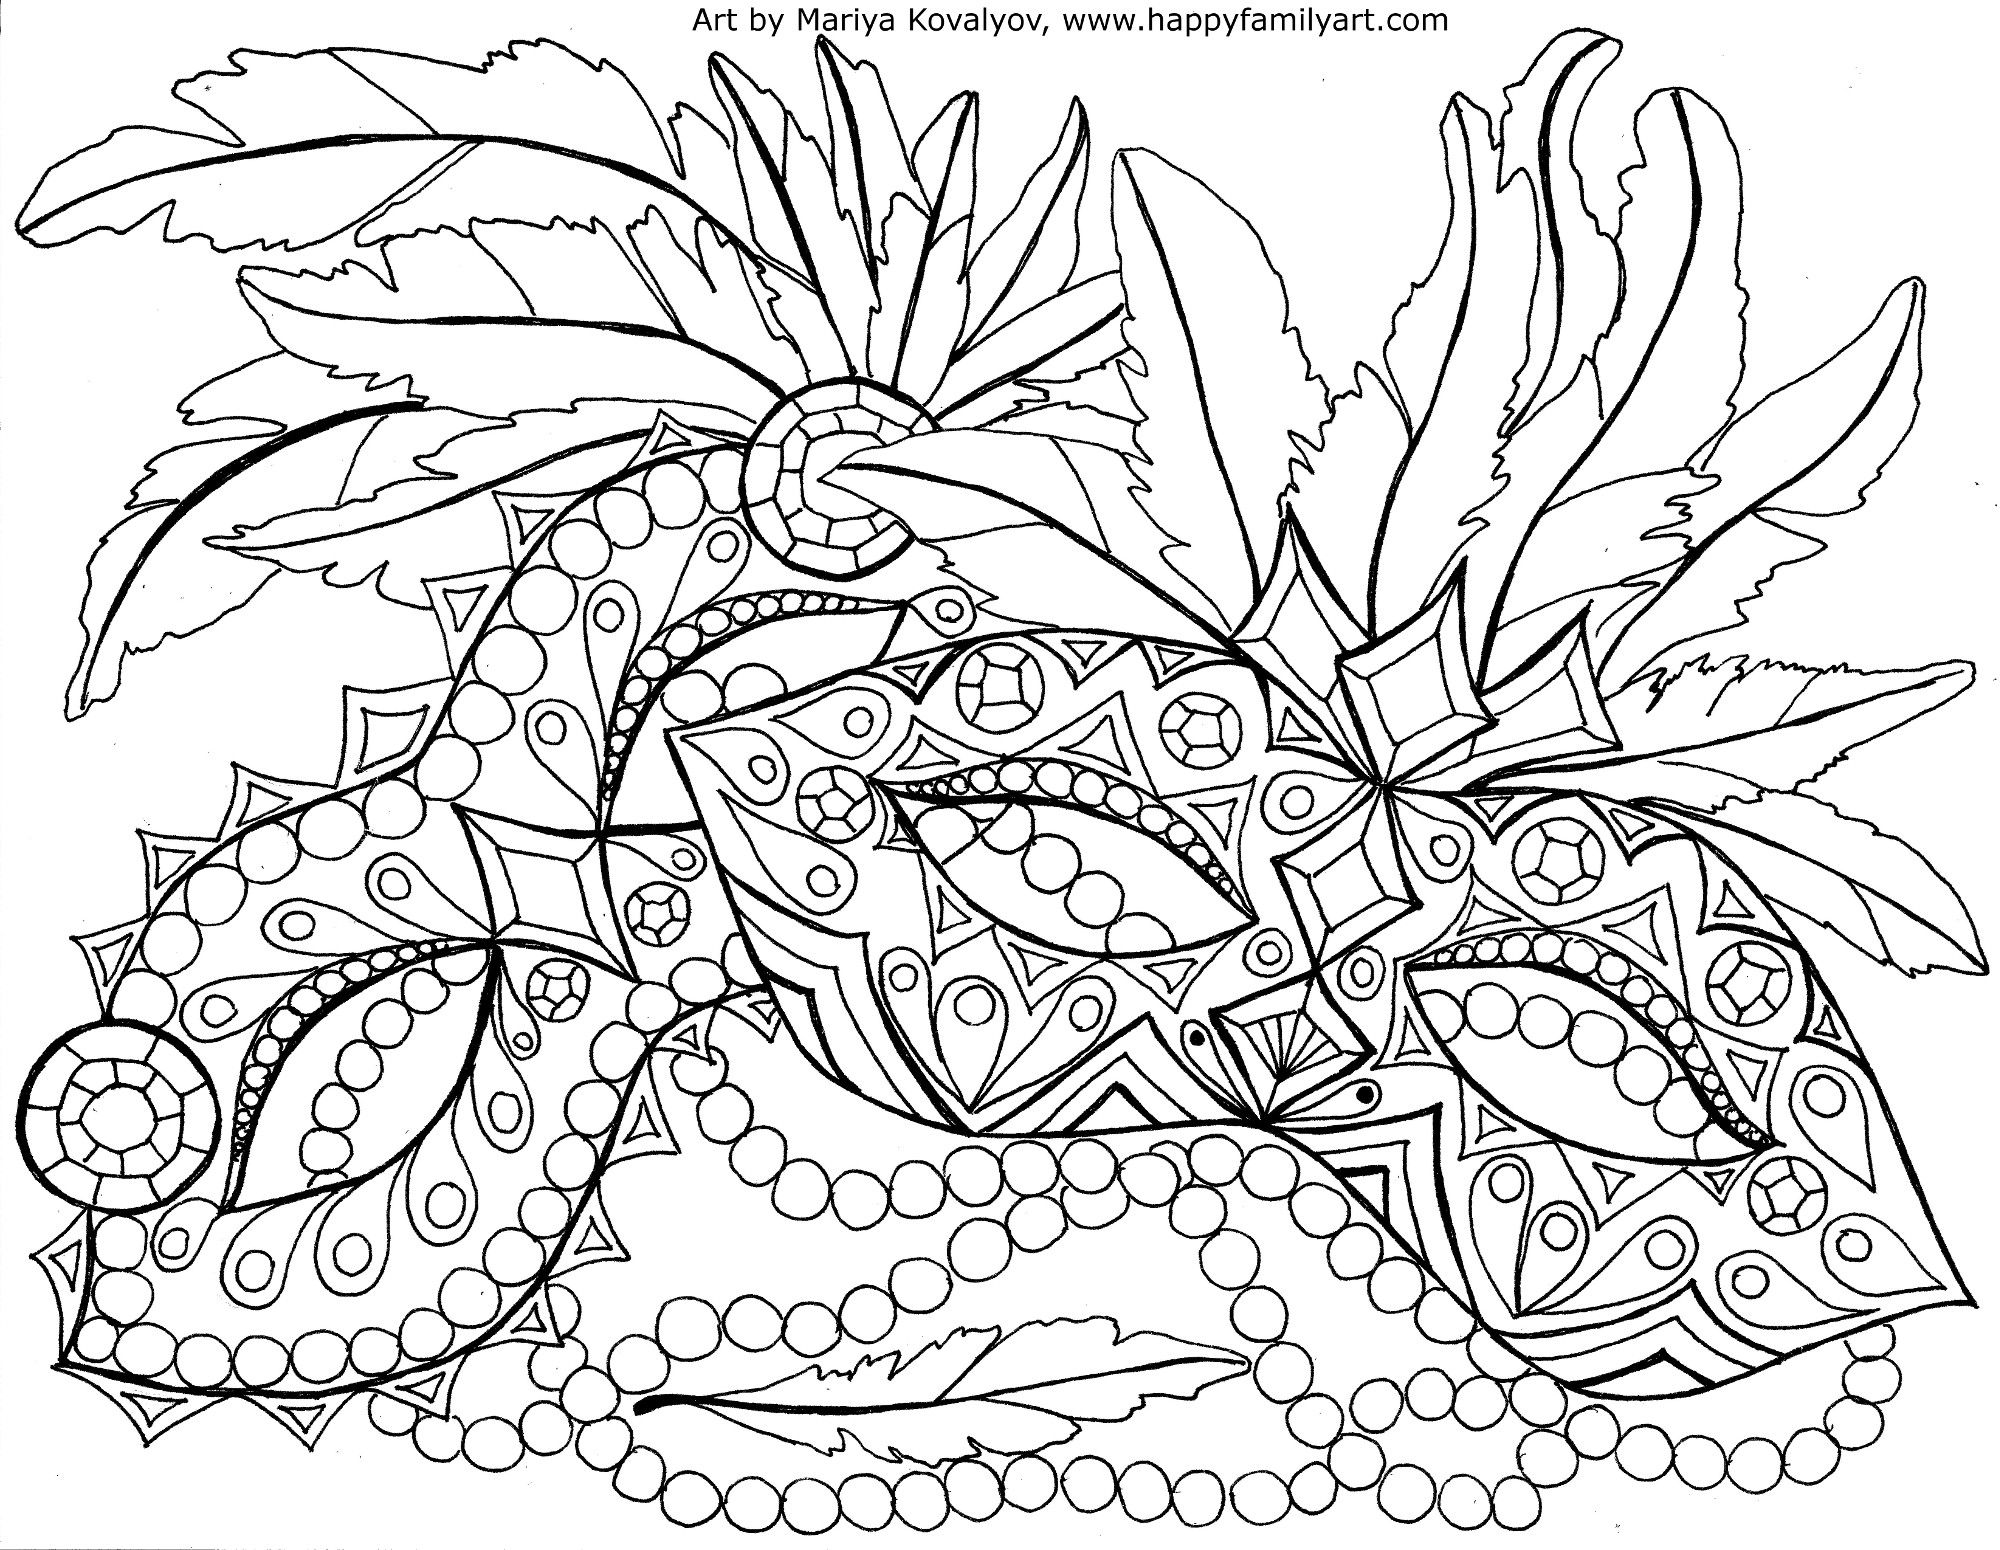 Parade coloring pages to print for adults - Mardi Gras Masquerade Colouring Page For Adults